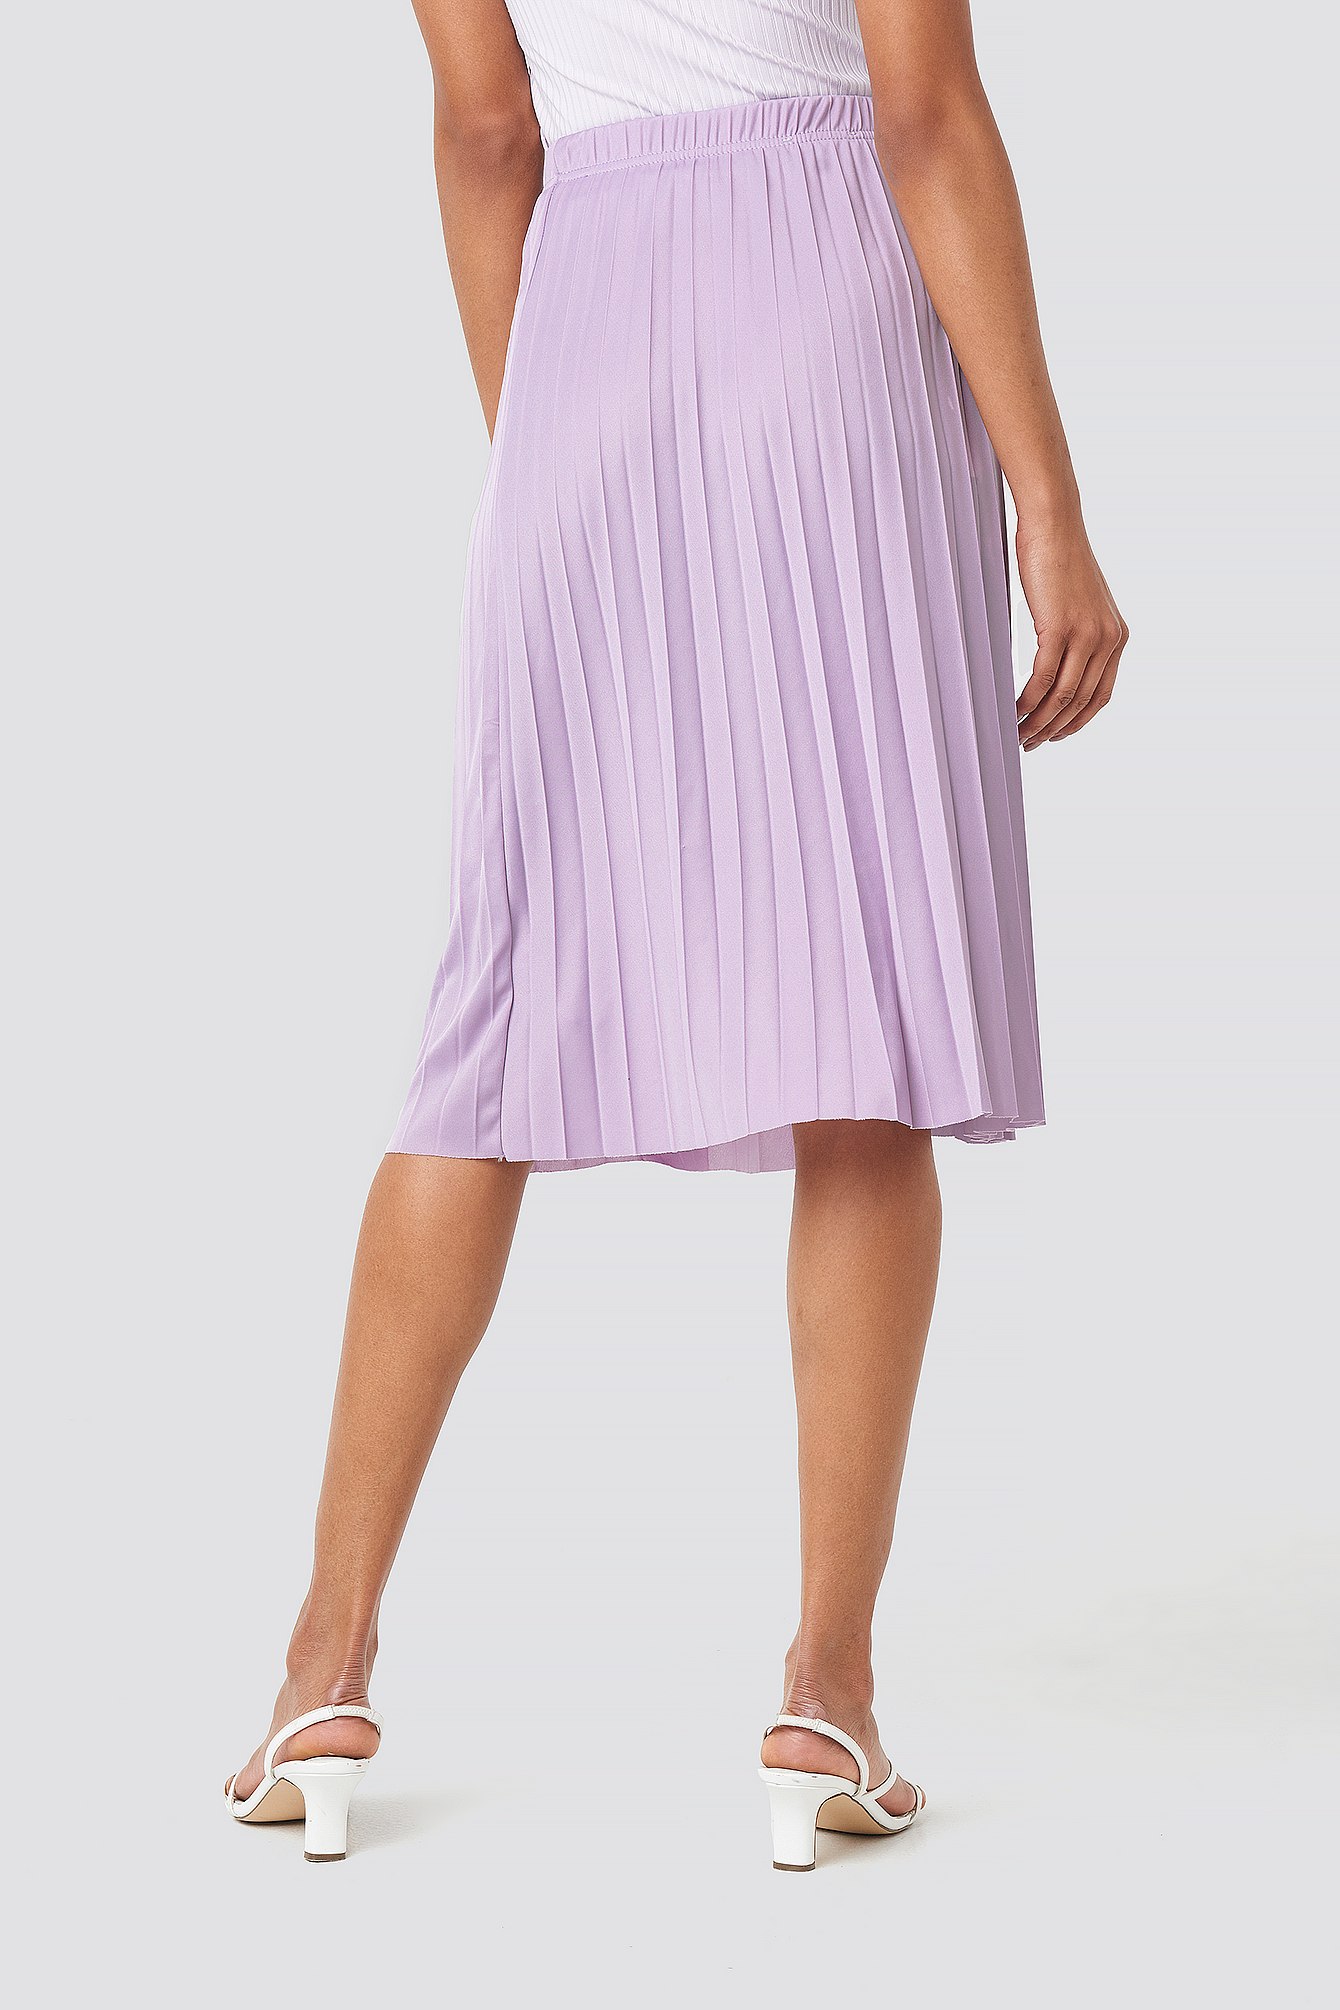 Yol Pleated Midi Skirt NA-KD.COM